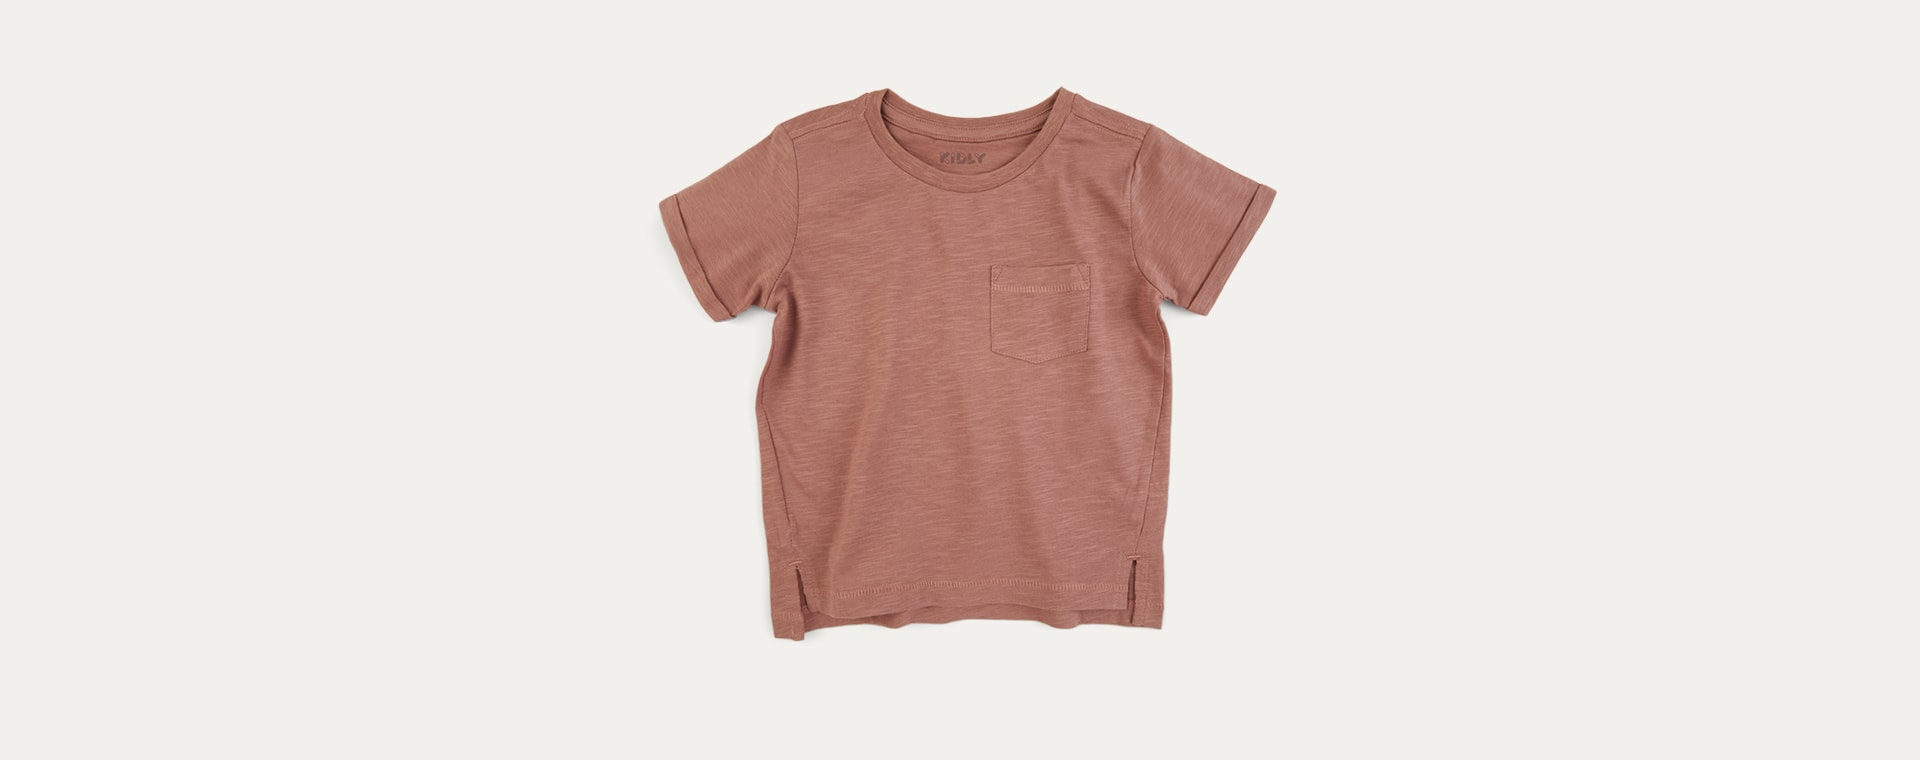 Burlwood KIDLY Label Perfect Tee